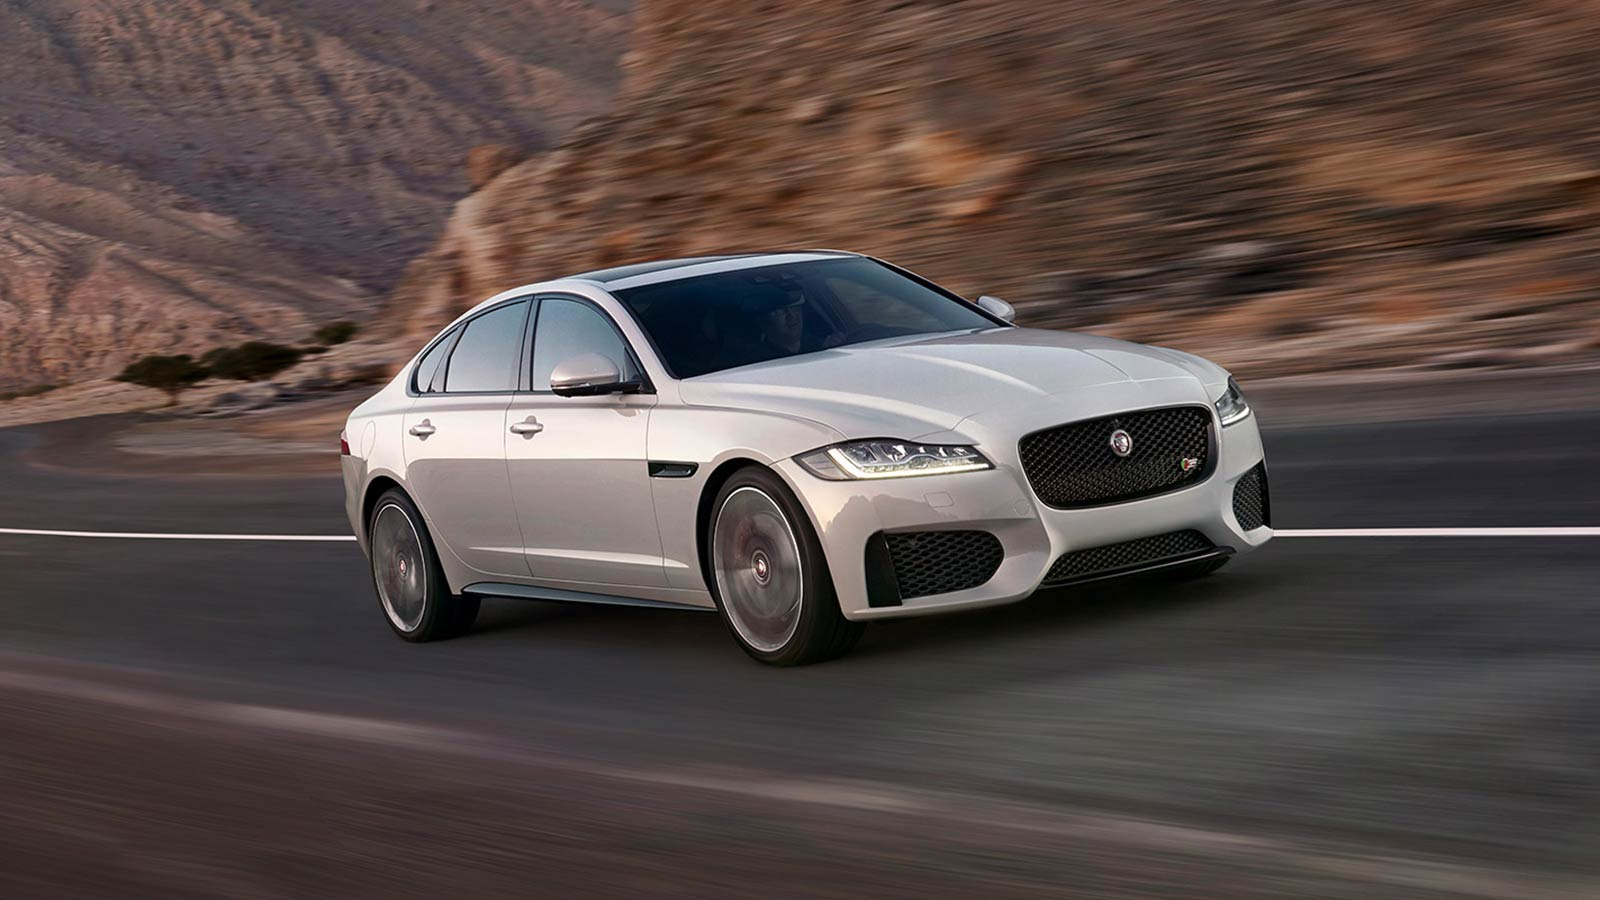 A White Jaguar XF Driving By Some Cliffs.